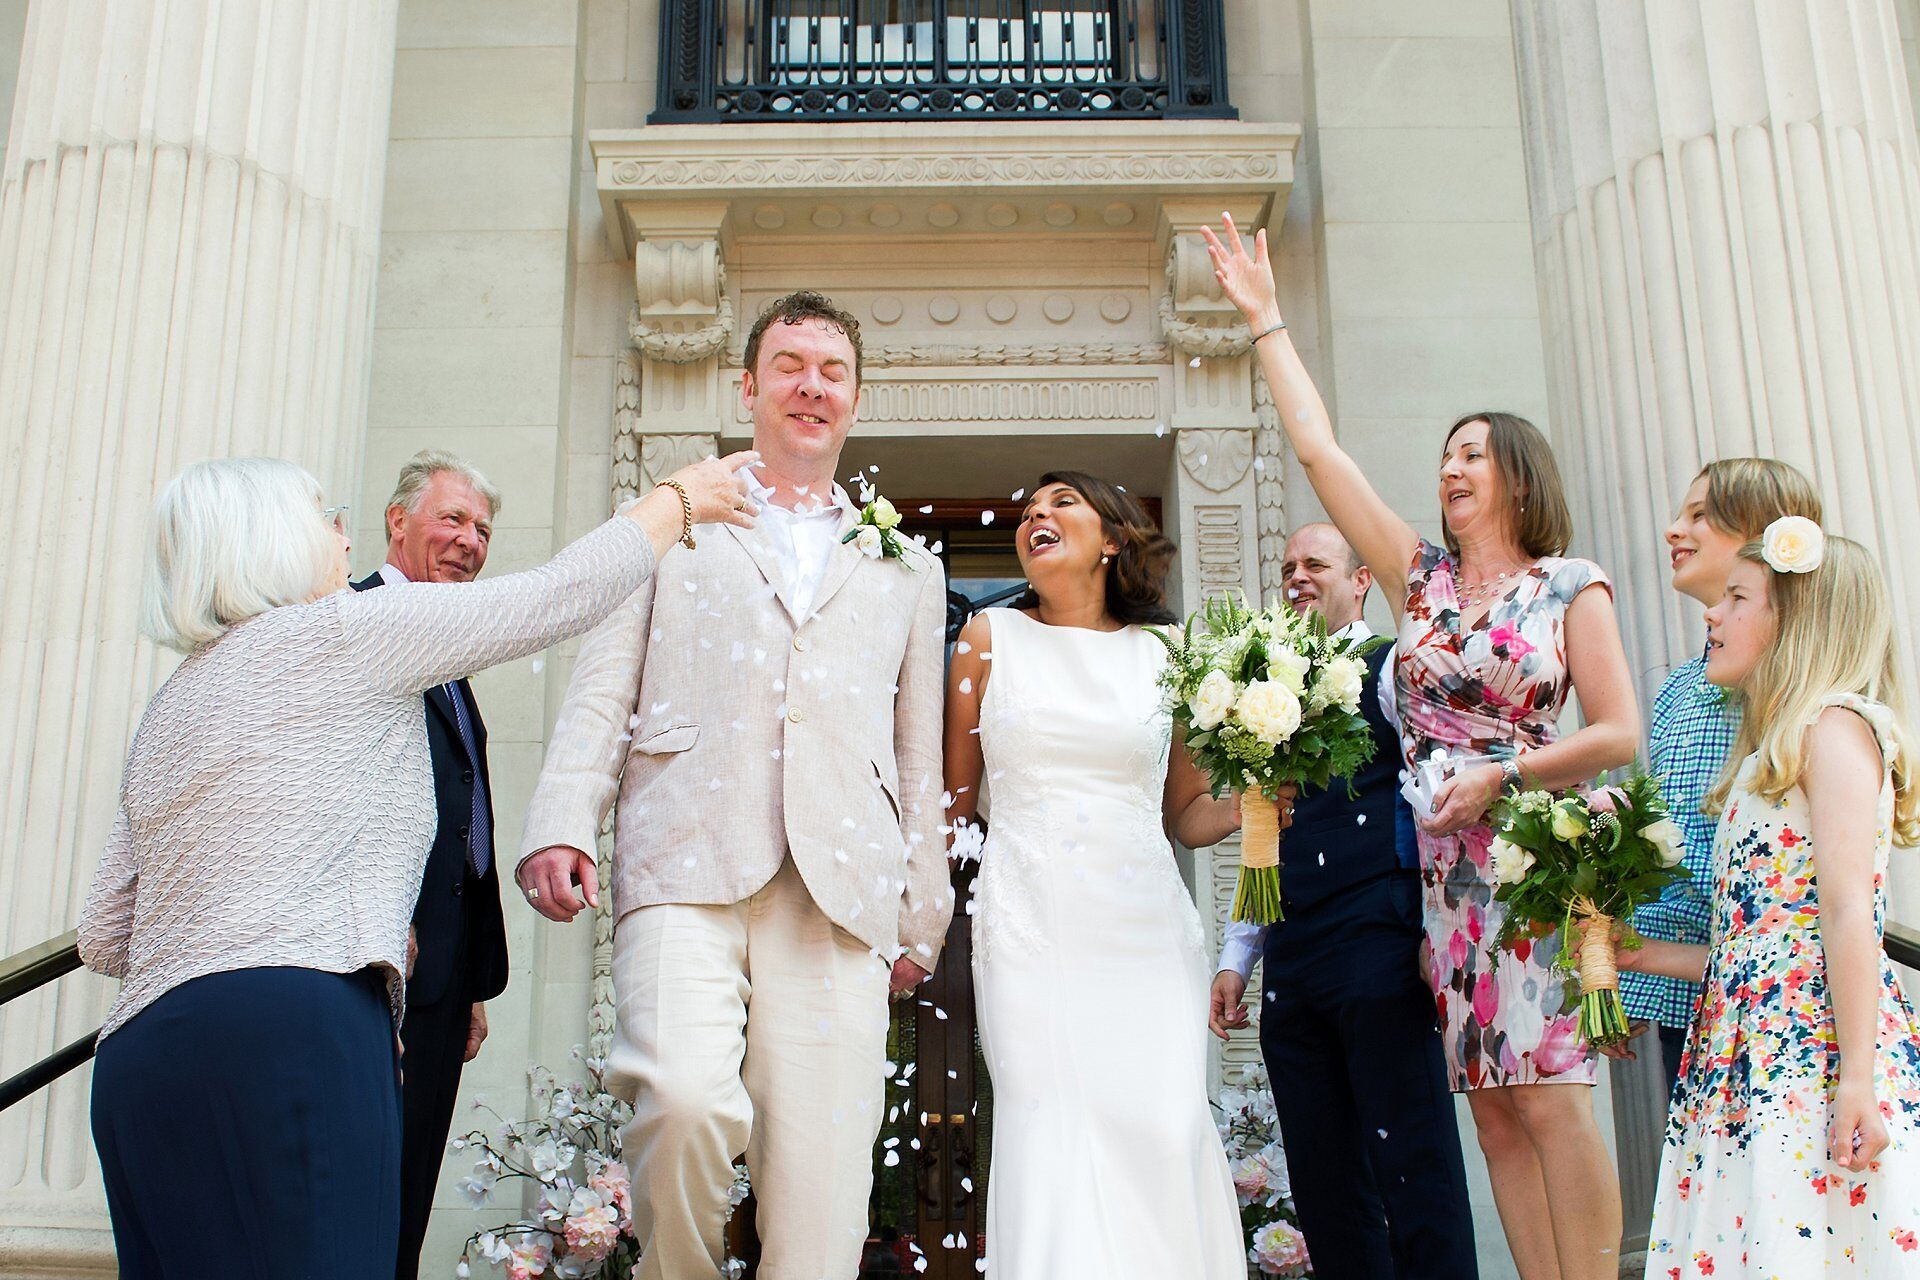 a bride and groom dodge confetti at westminster register office